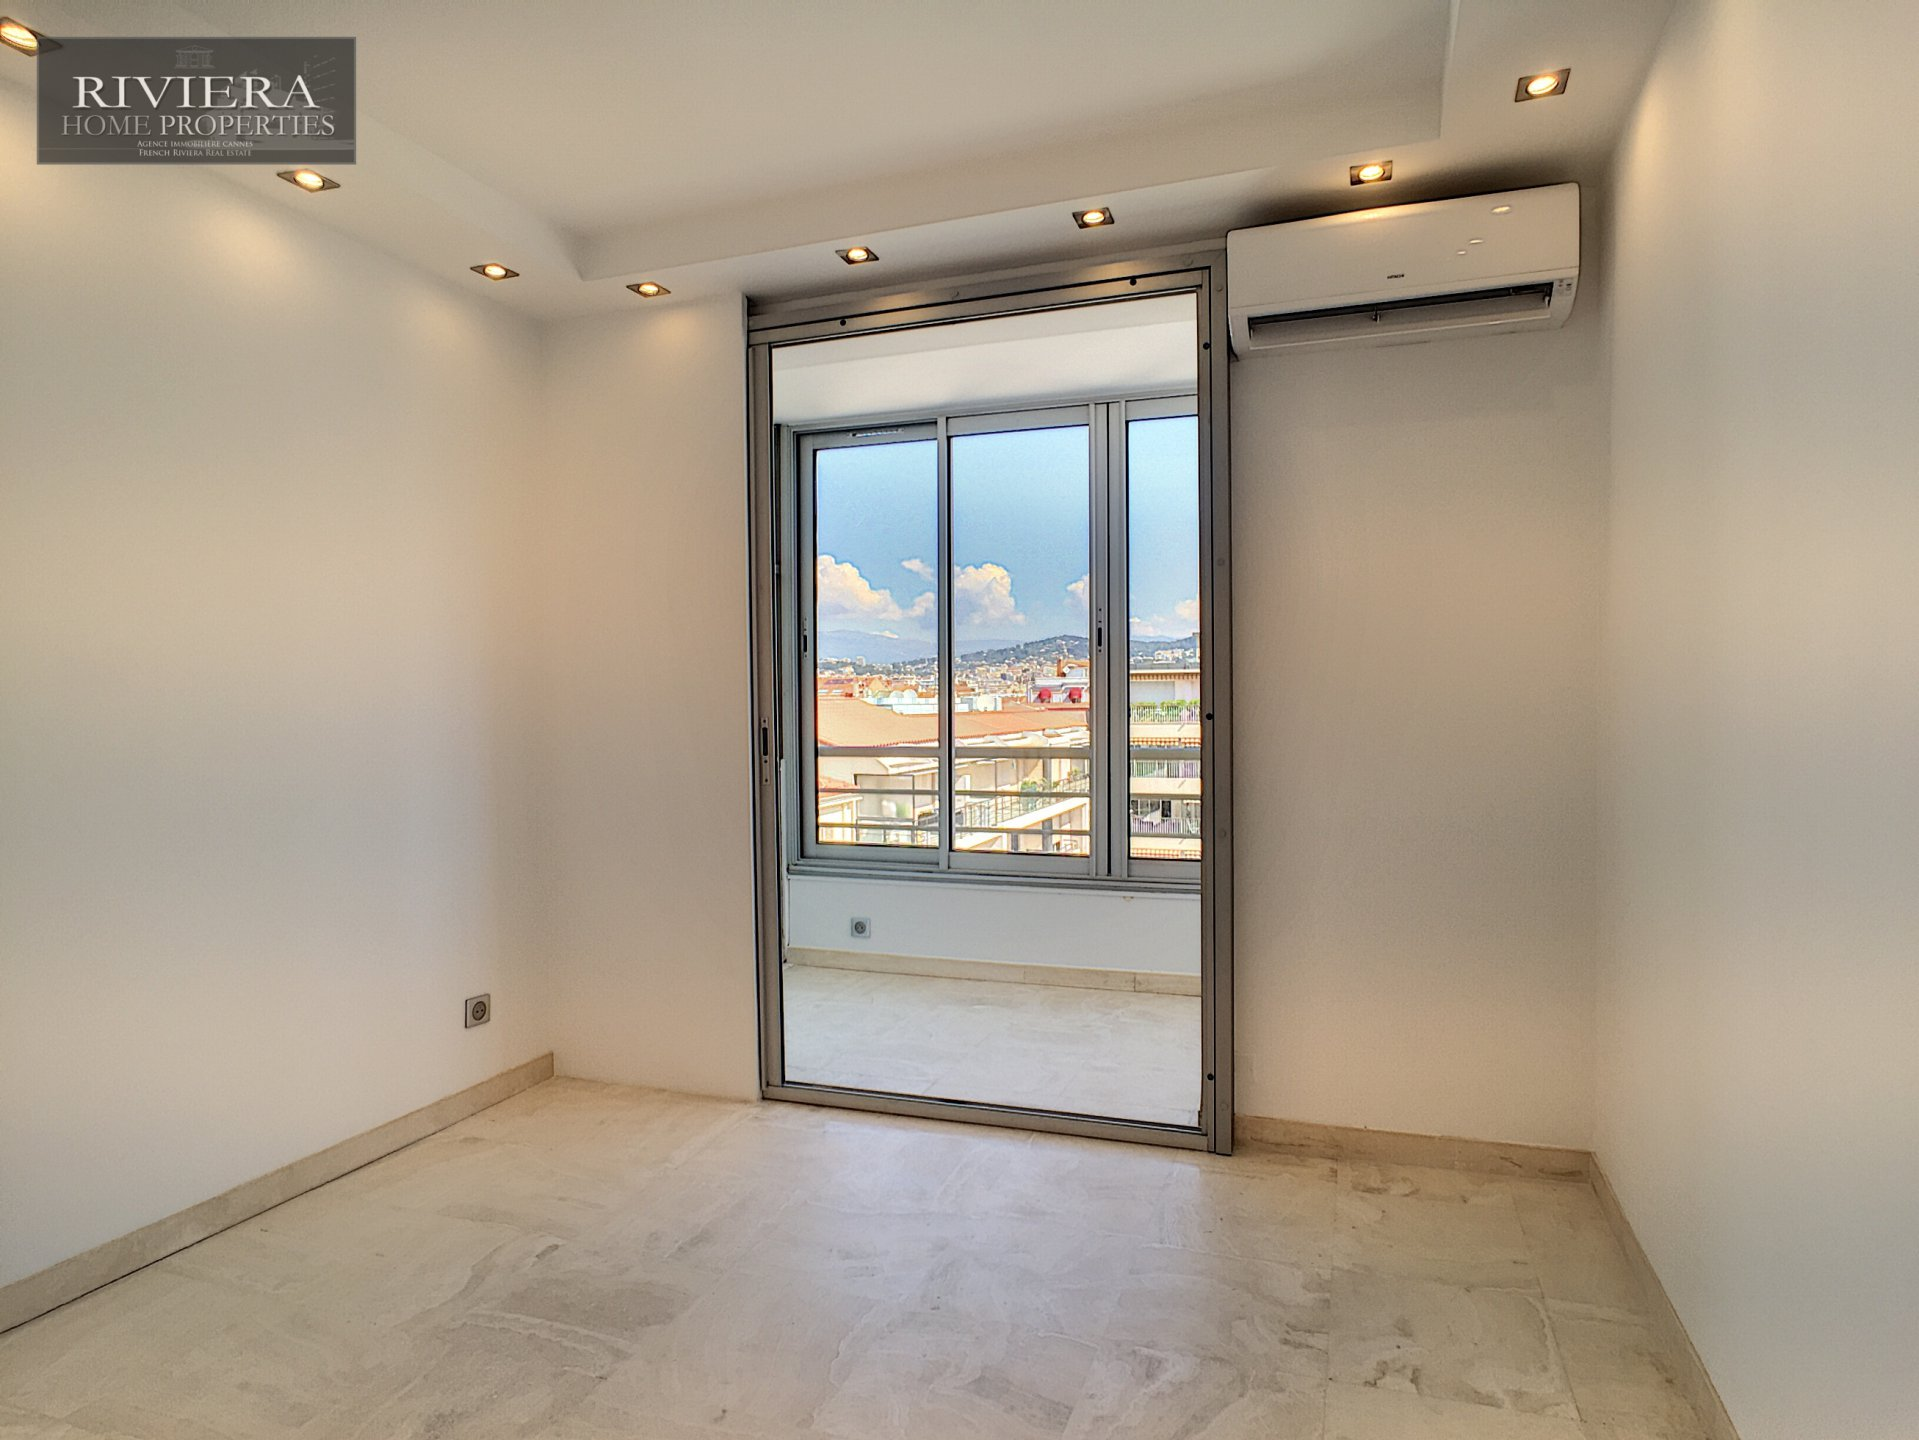 Cannes Croisette, 2 bedrooms apartment renovated.